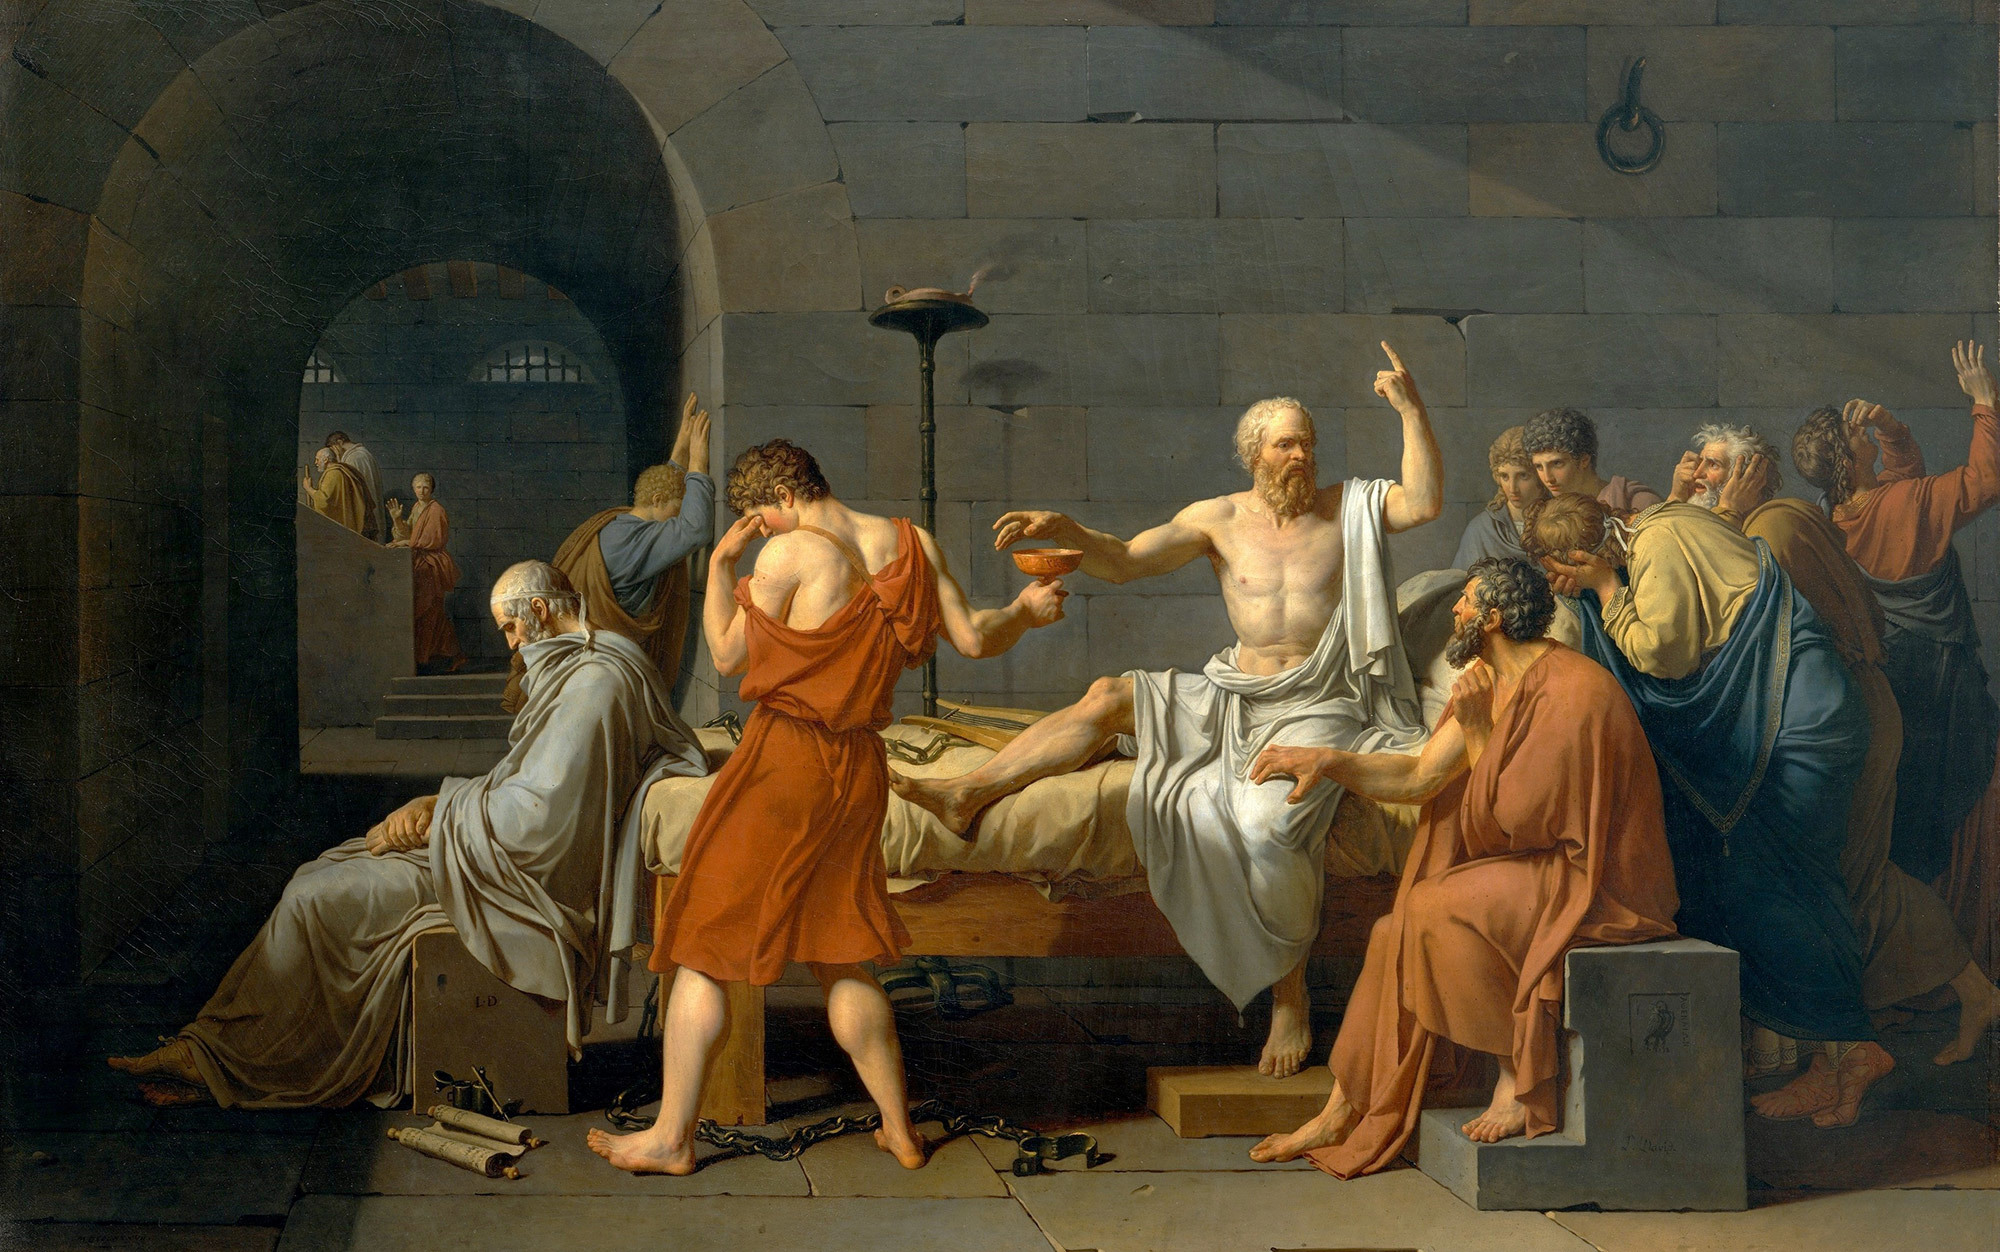 socrates essay pixels the civic drama of socrates trial aeon essays